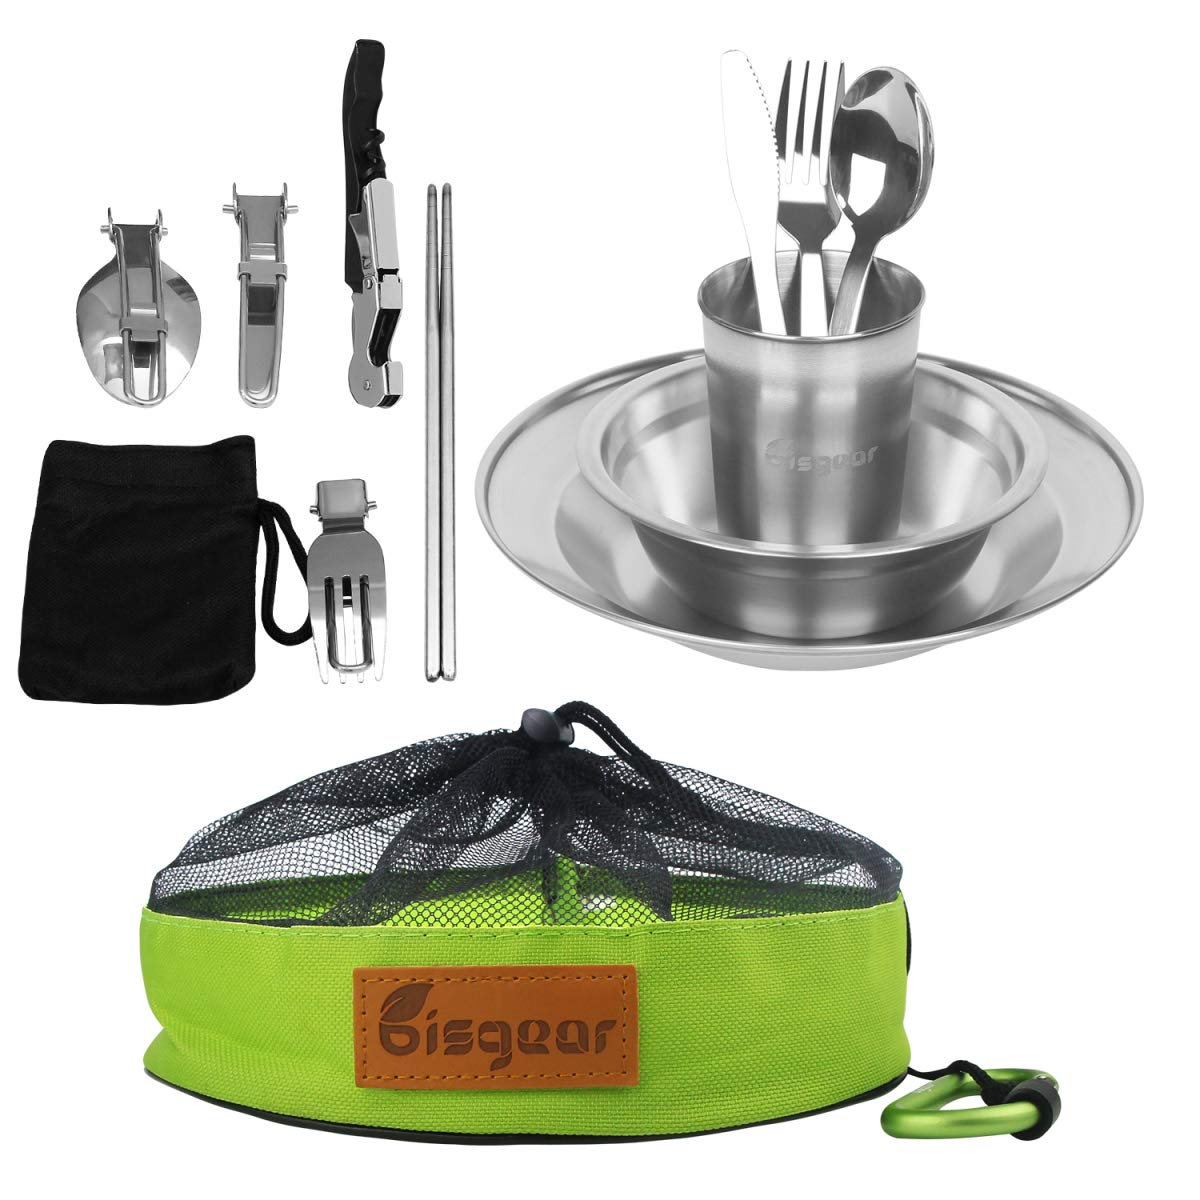 Bisgear 13-34pcs Stainless Steel Tableware Mess Kit Includes Plate Bowl Cup Spoon Fork Knife Chopsticks Carabiner Wine Opener Dishcloth & Mesh Travel Bag for Backpacking & Camping